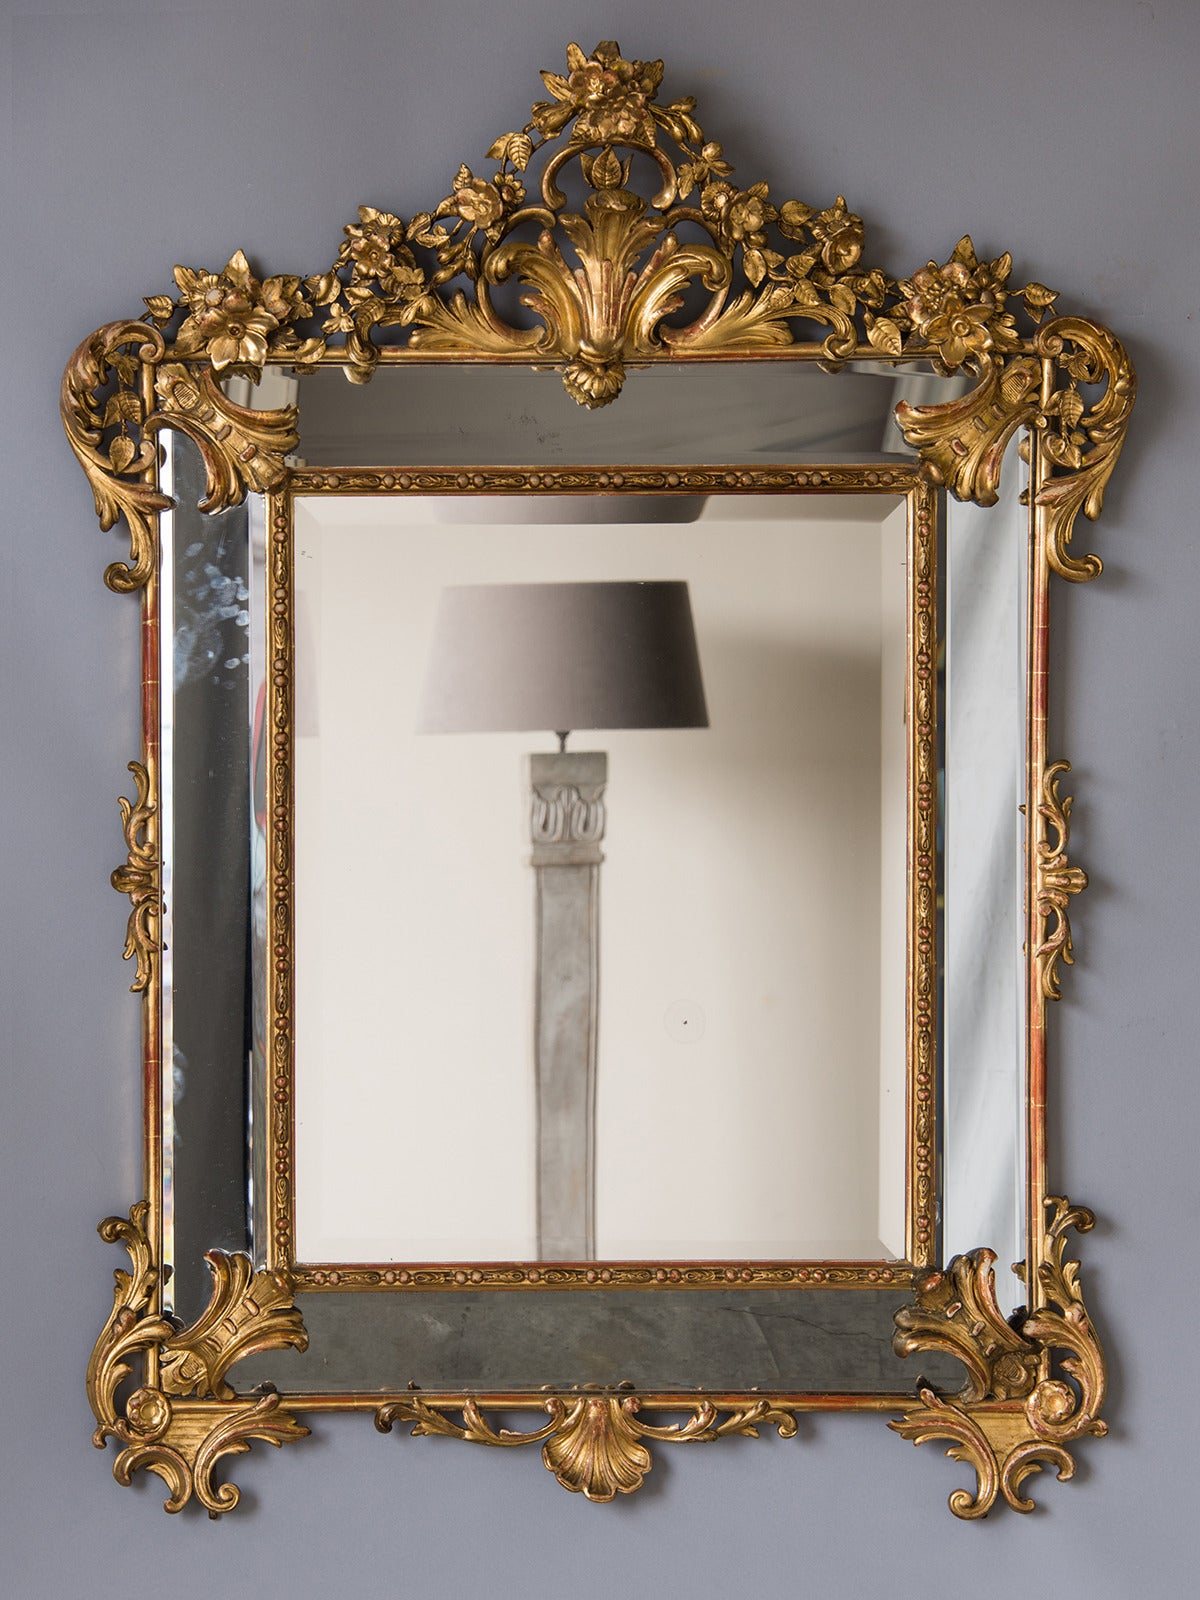 Bold Antique French Régence Style Pareclose Gold Leaf Mirror, circa 1890 2